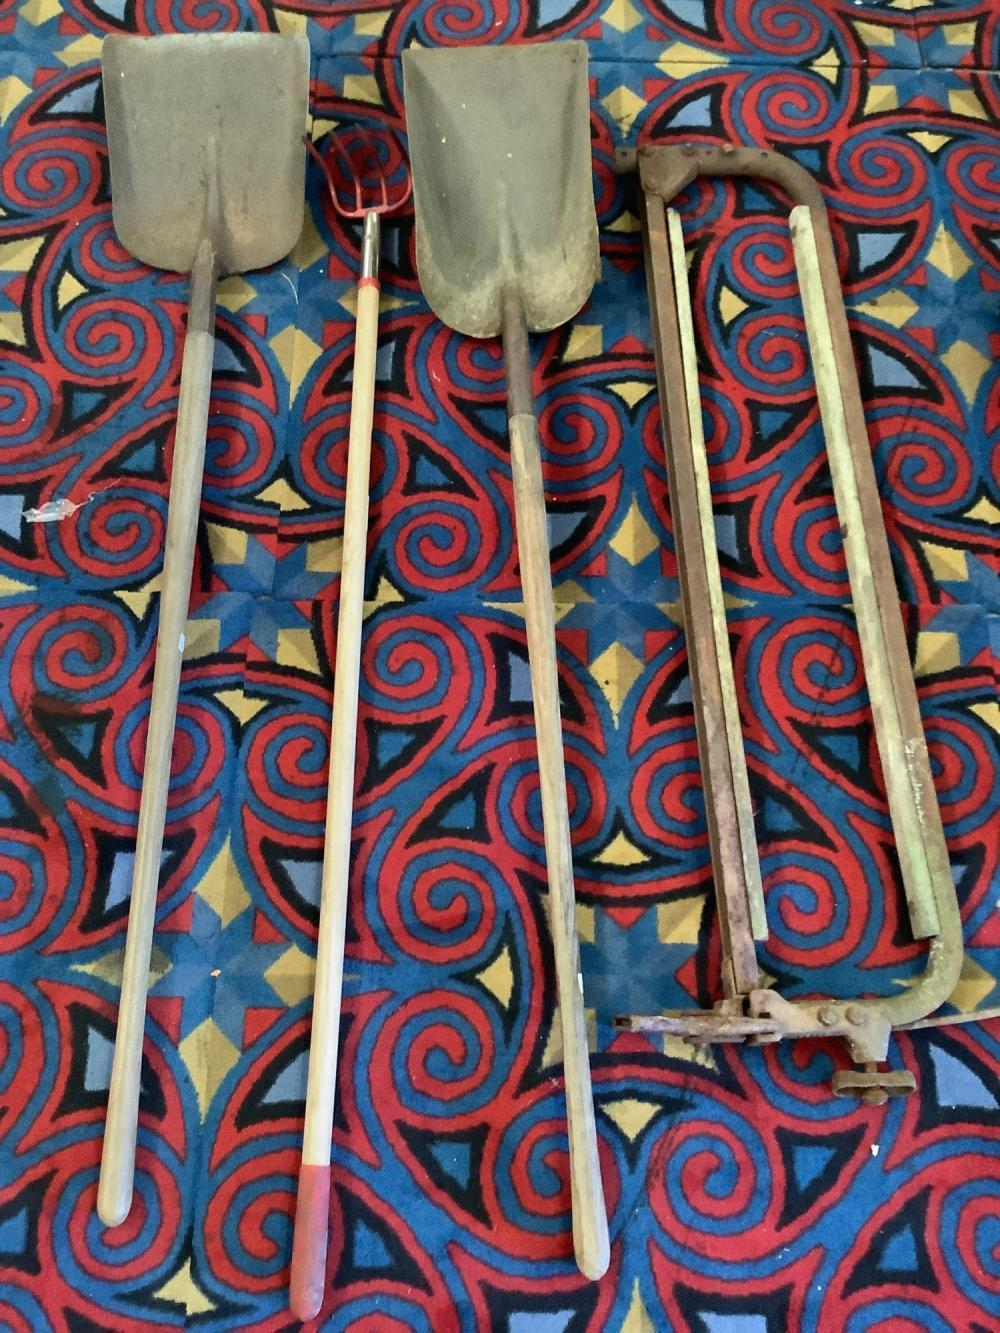 Lot 7: Vintage wood handle yard tools, axe heads, Seymour MFG. wheelbarrow, vice grip, shovels, rake etc